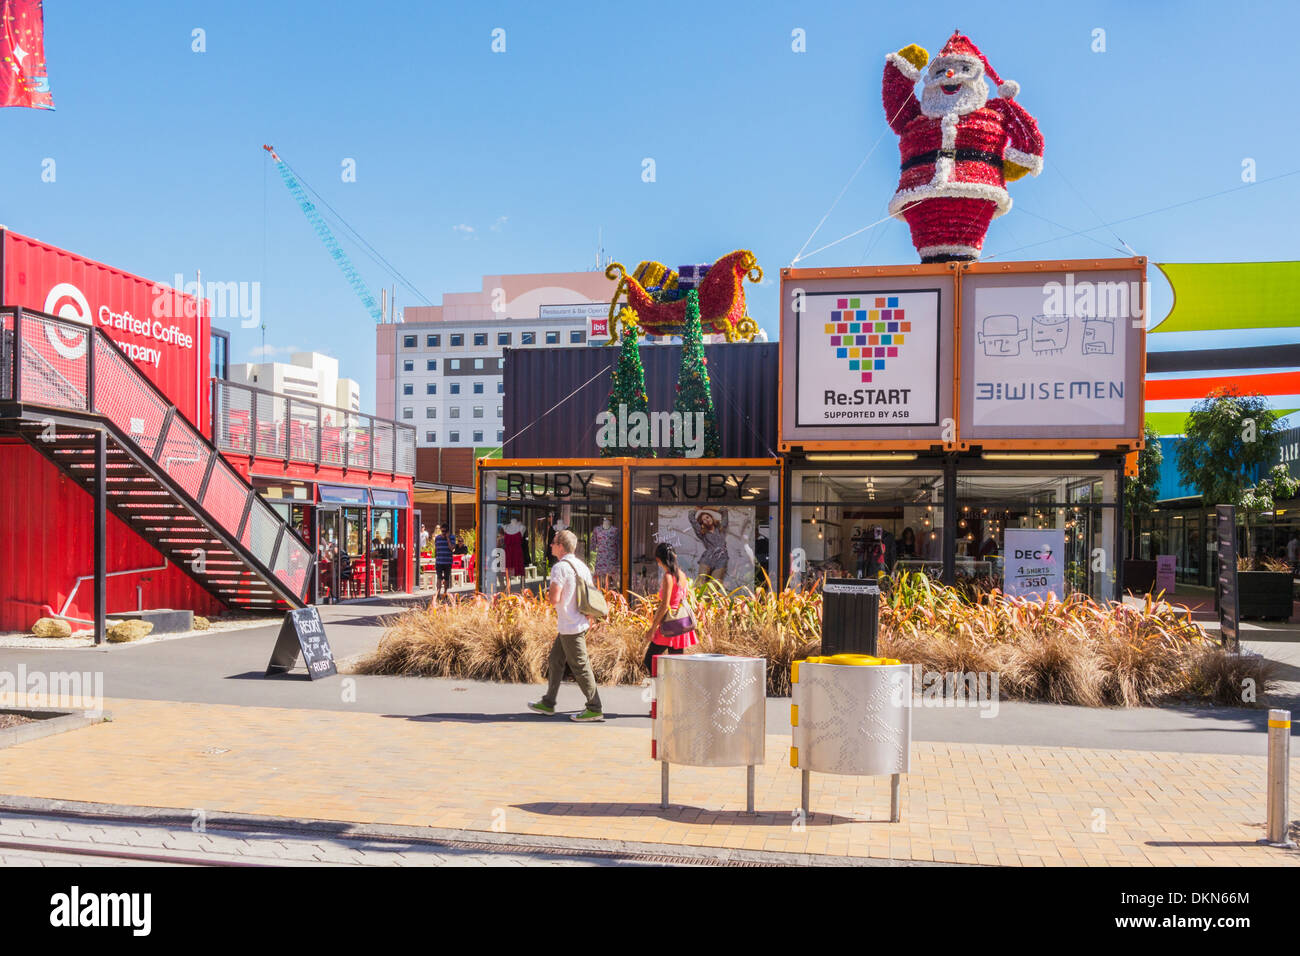 Container Mall, Christchurch, New Zealand, at Christmas. Christmas decorations as the Christchurch earthquake recovery... - Stock Image